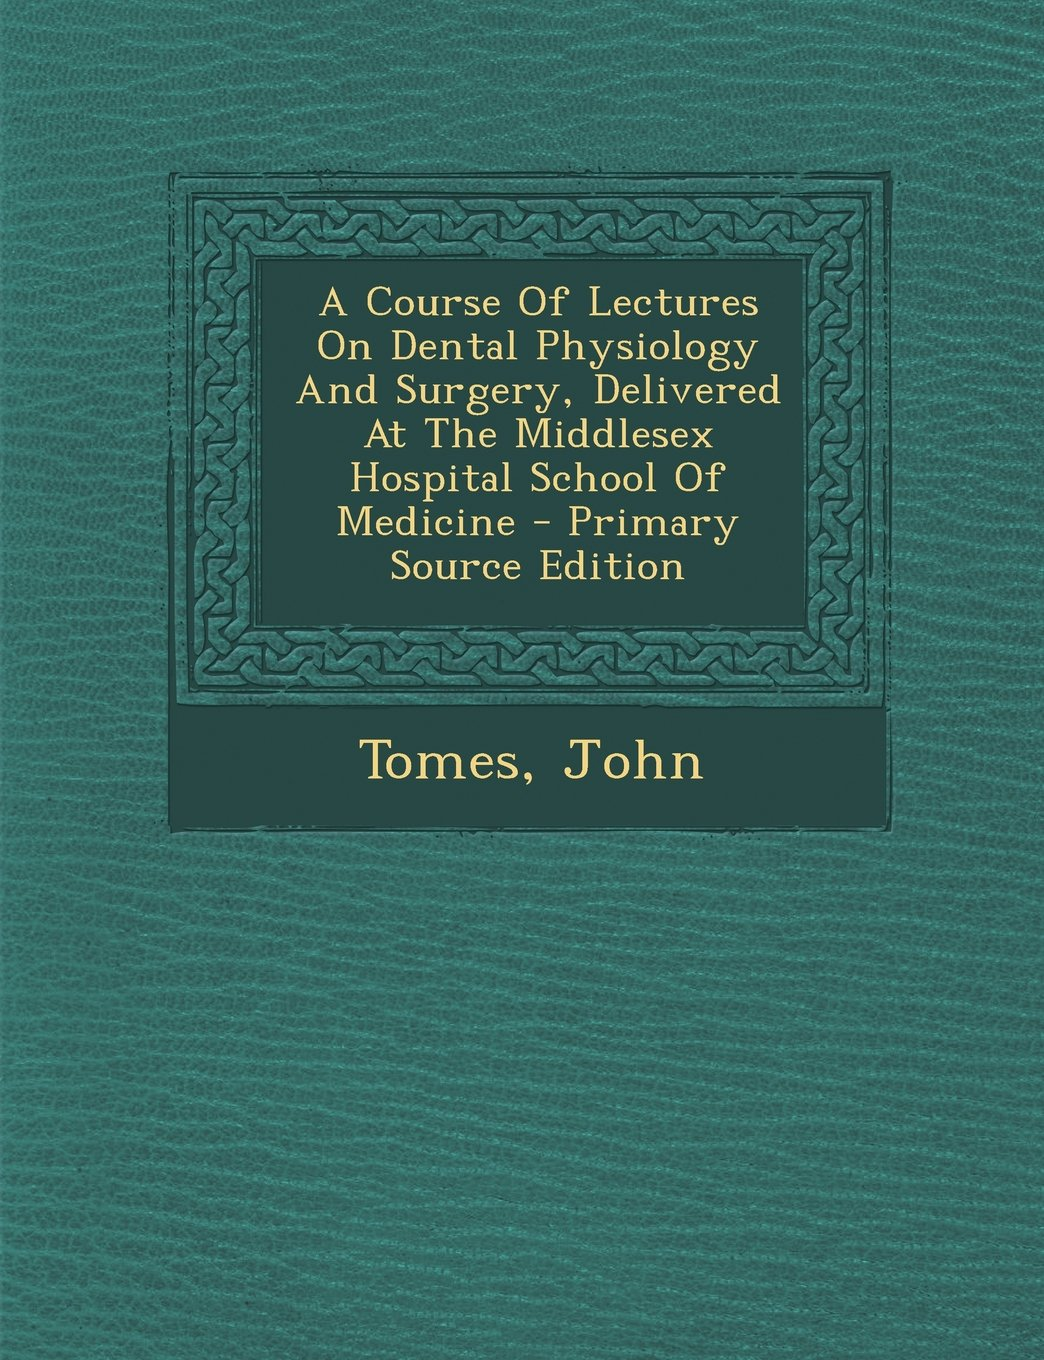 Download A Course Of Lectures On Dental Physiology And Surgery, Delivered At The Middlesex Hospital School Of Medicine - Primary Source Edition pdf